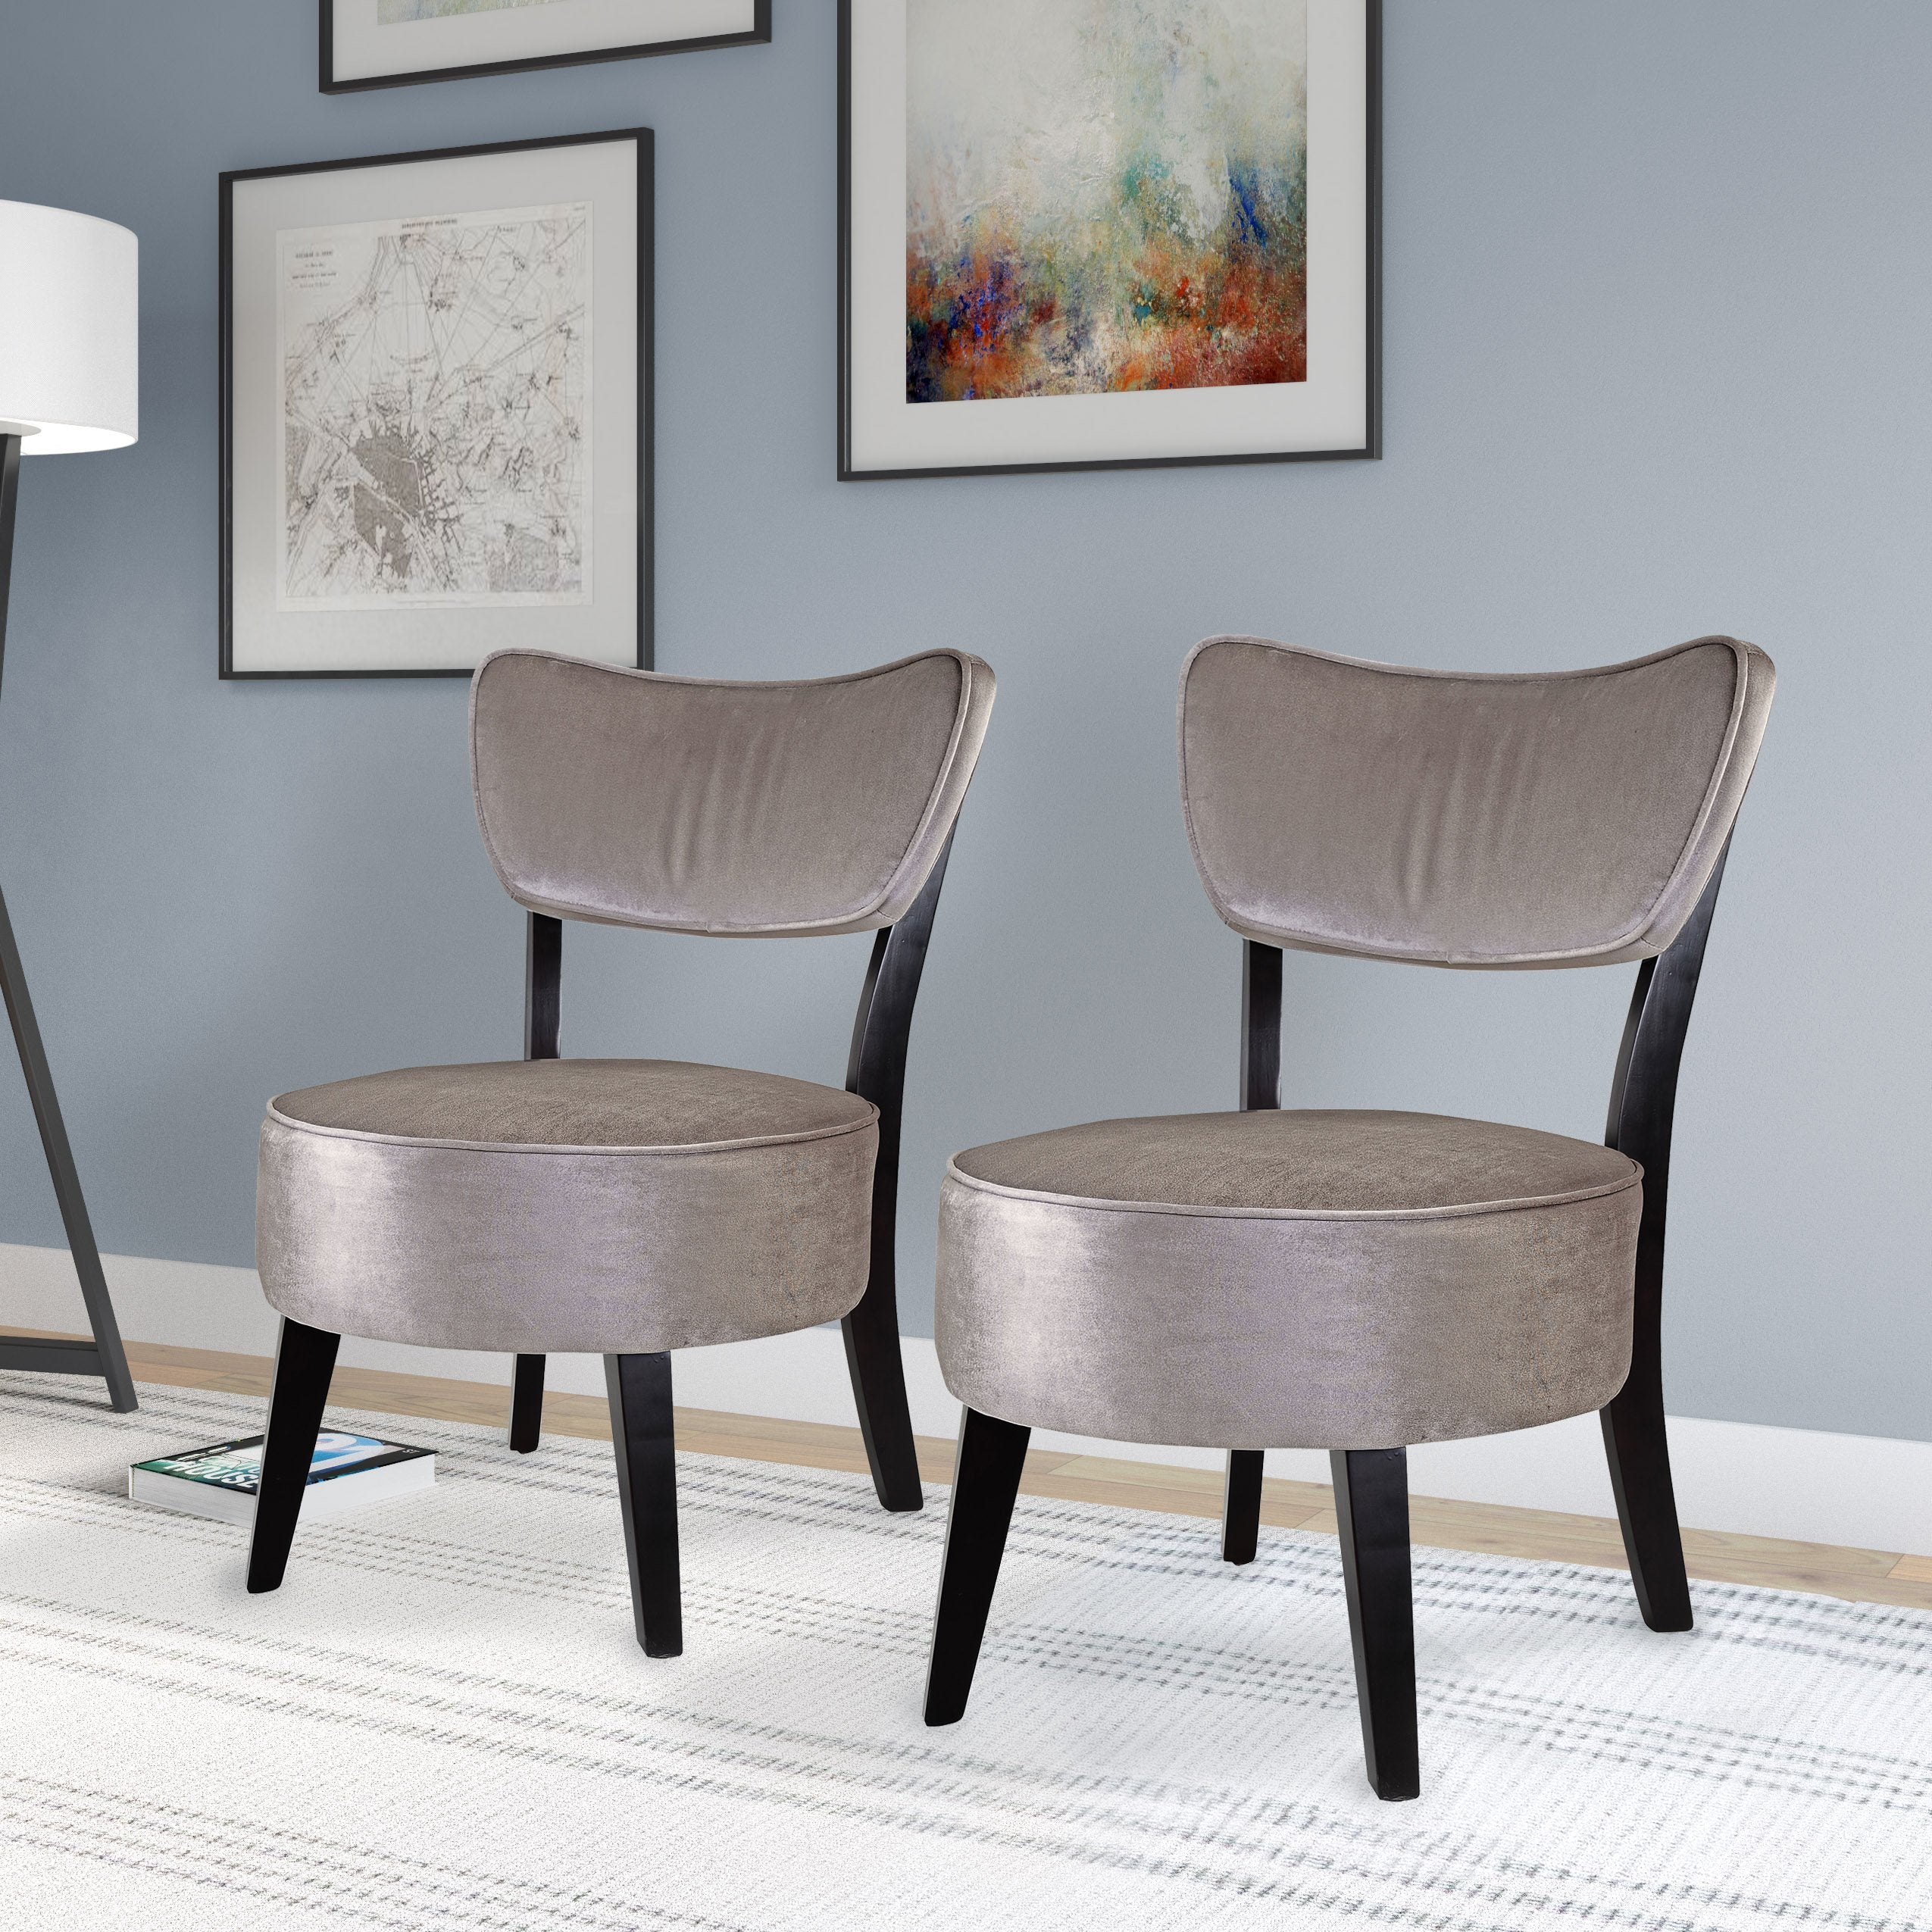 Admirable Grey Velvet Like Fabric Accent Chair Set Of 2 Pdpeps Interior Chair Design Pdpepsorg